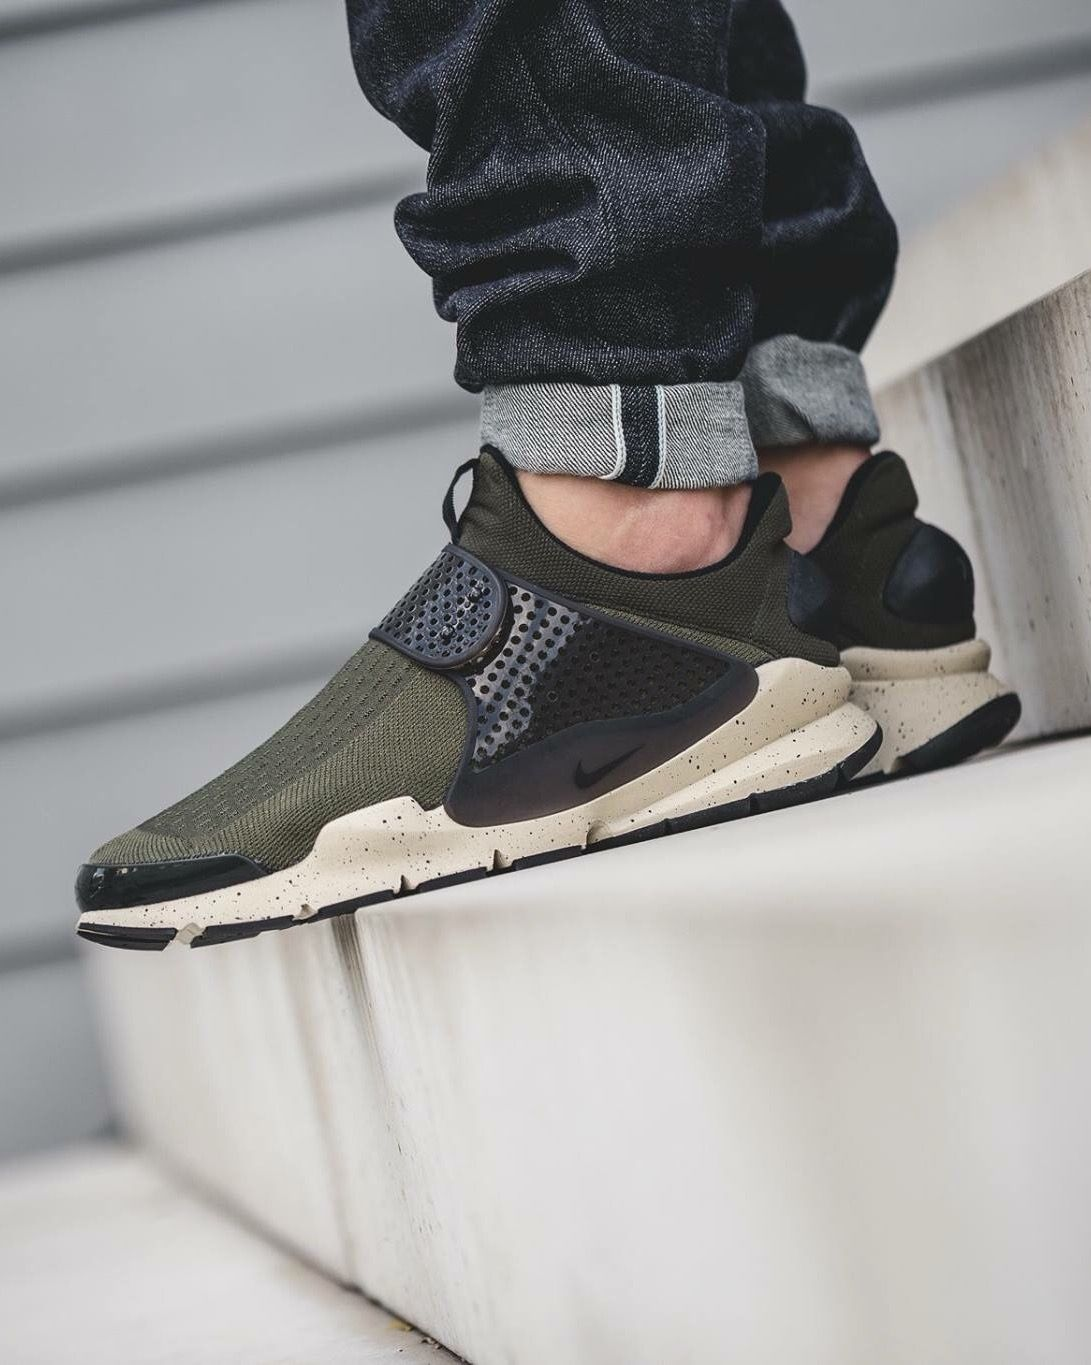 3eef866d Nike Sock Dart: Dark Olive | Shoe Game | Sneakers, Shoes, Sneakers nike